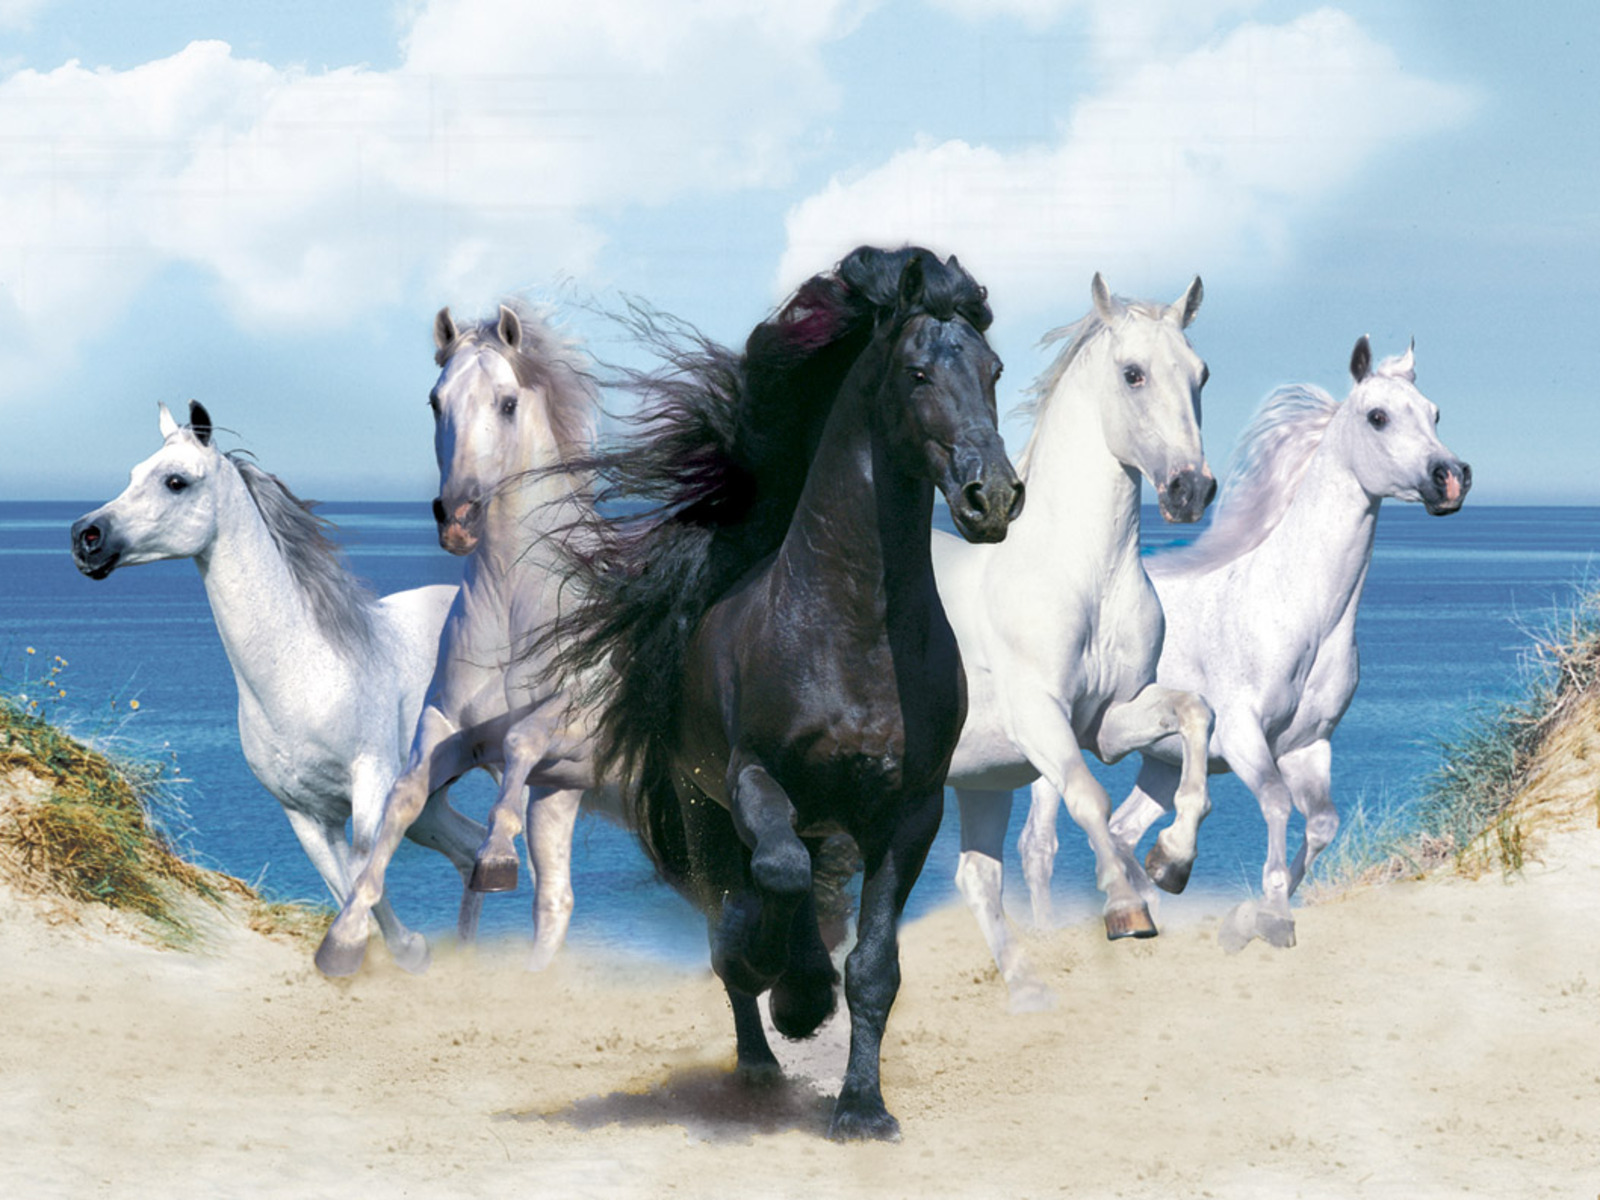 Horse Wallpapers Pictures of Horse Animal Photo 1600x1200